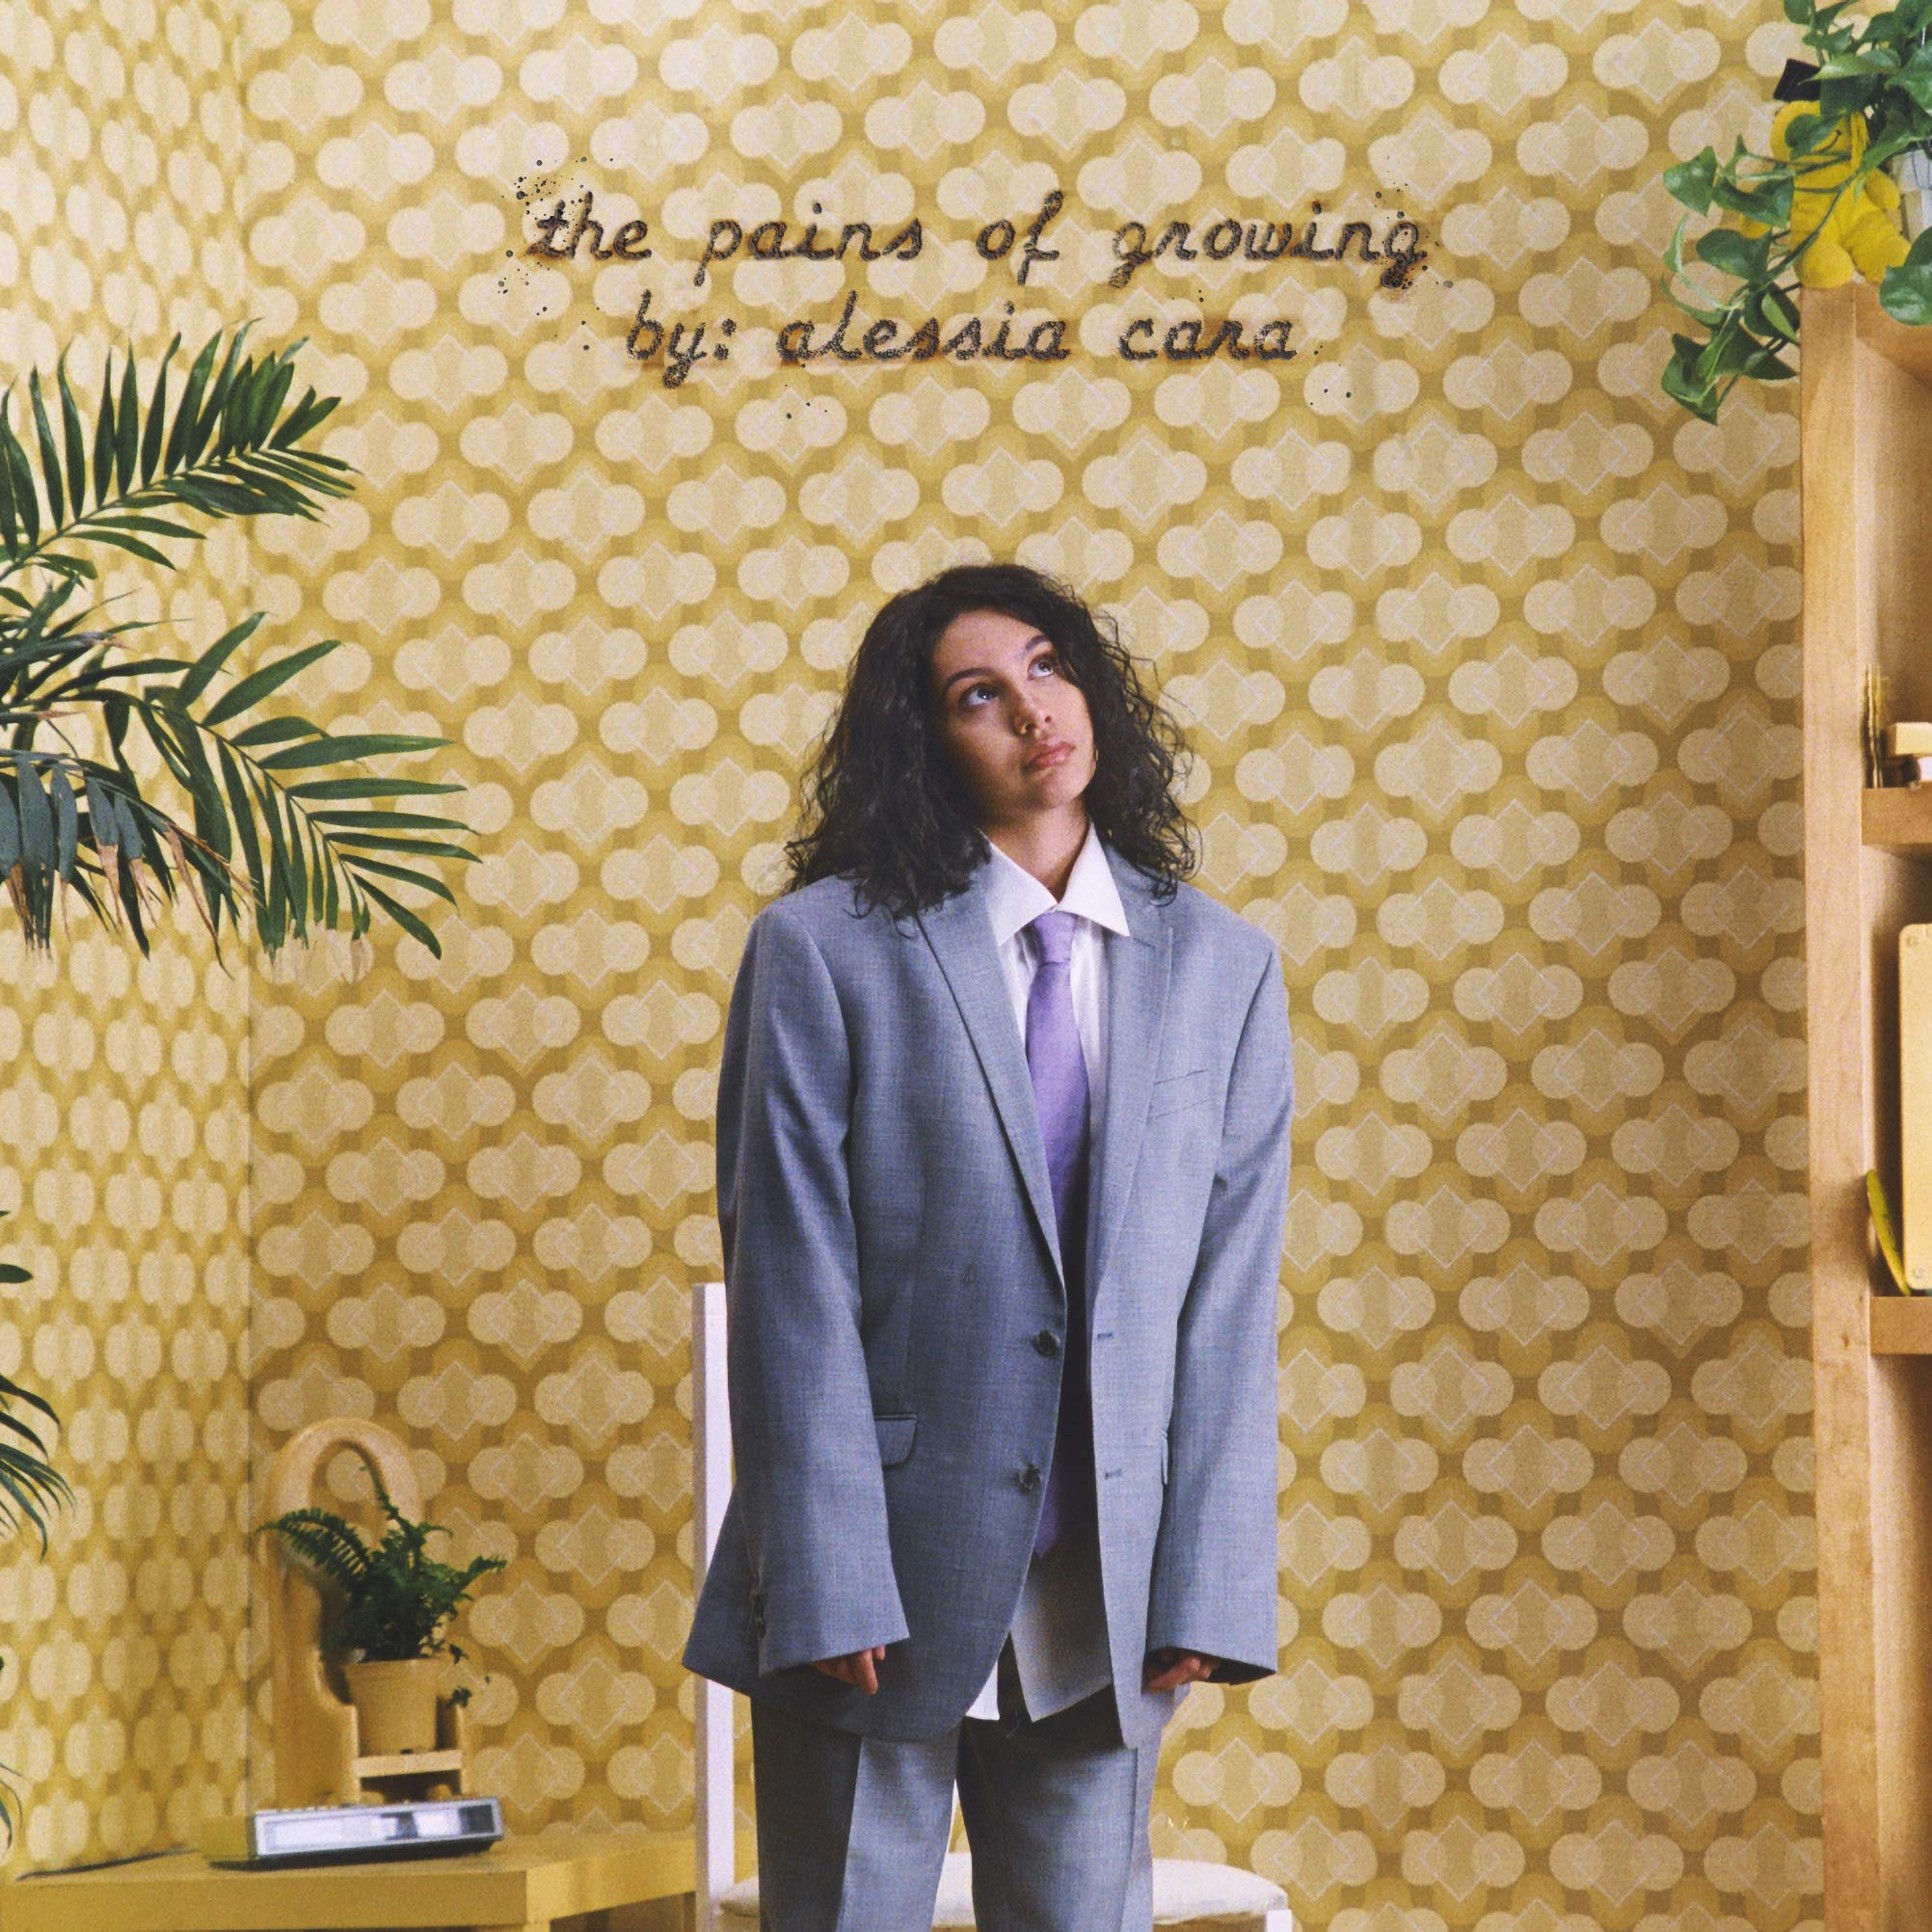 CD : Alessia Cara - Pains Of Growing (Deluxe Edition, Germany - Import)